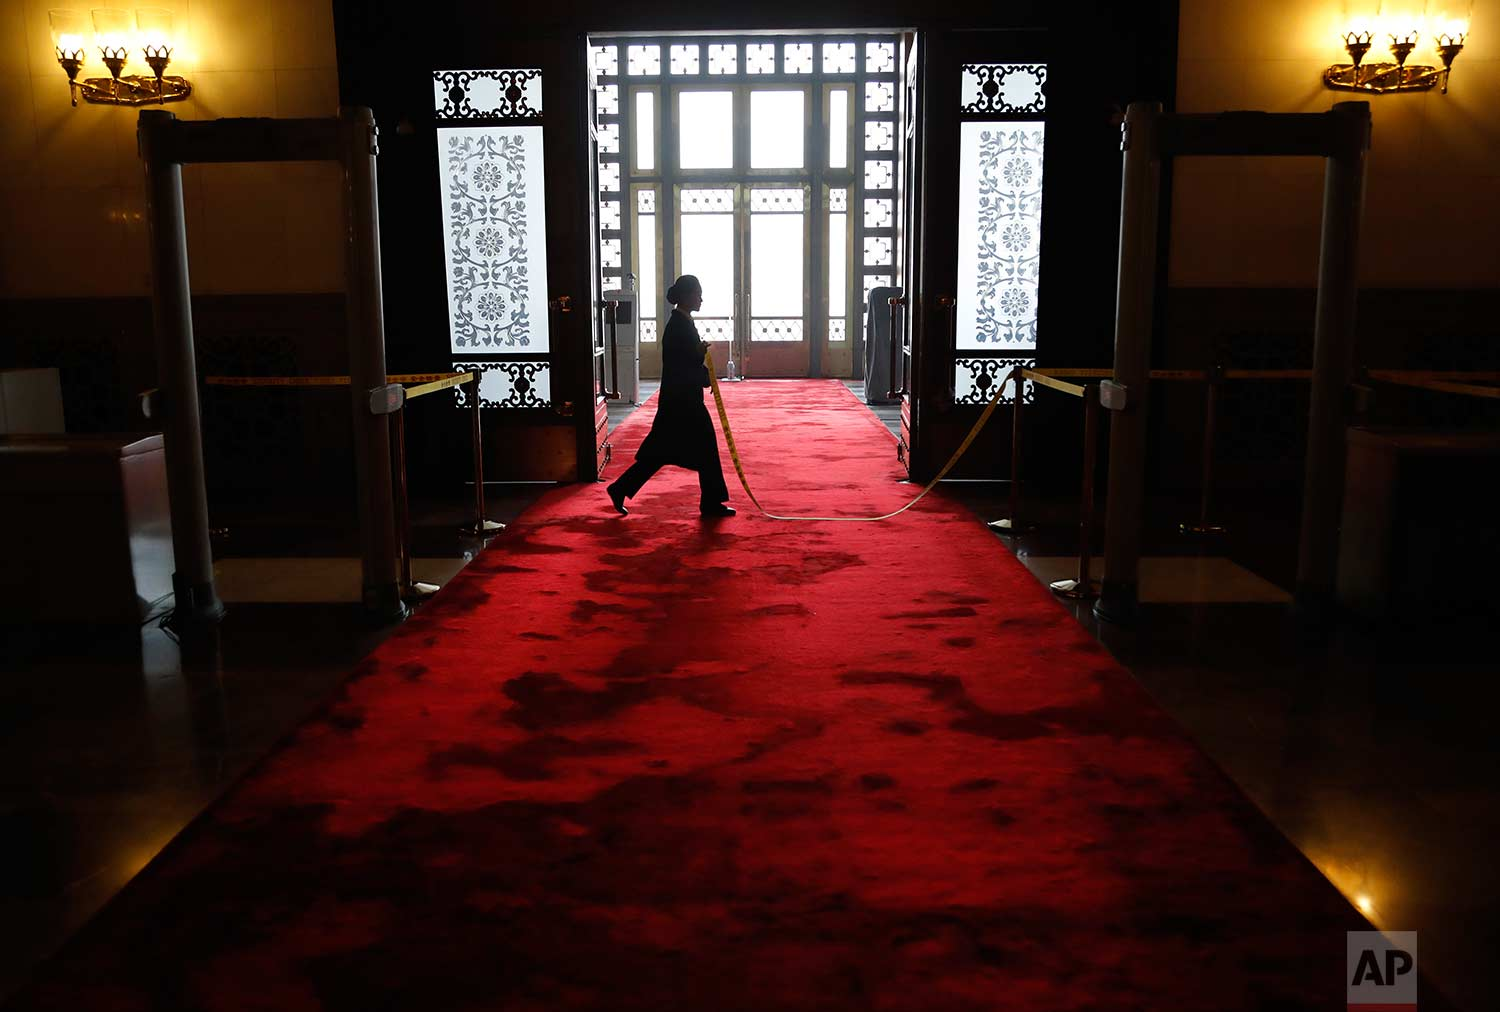 In this Tuesday, March 13, 2018 photo, a Chinese security staff walks on a red carpet at the entrance of the Great Hall of Beijing during a provincial group discussion meeting held during China's National People's Congress (NPC) in Beijing. (AP Photo/Aijaz Rahi)